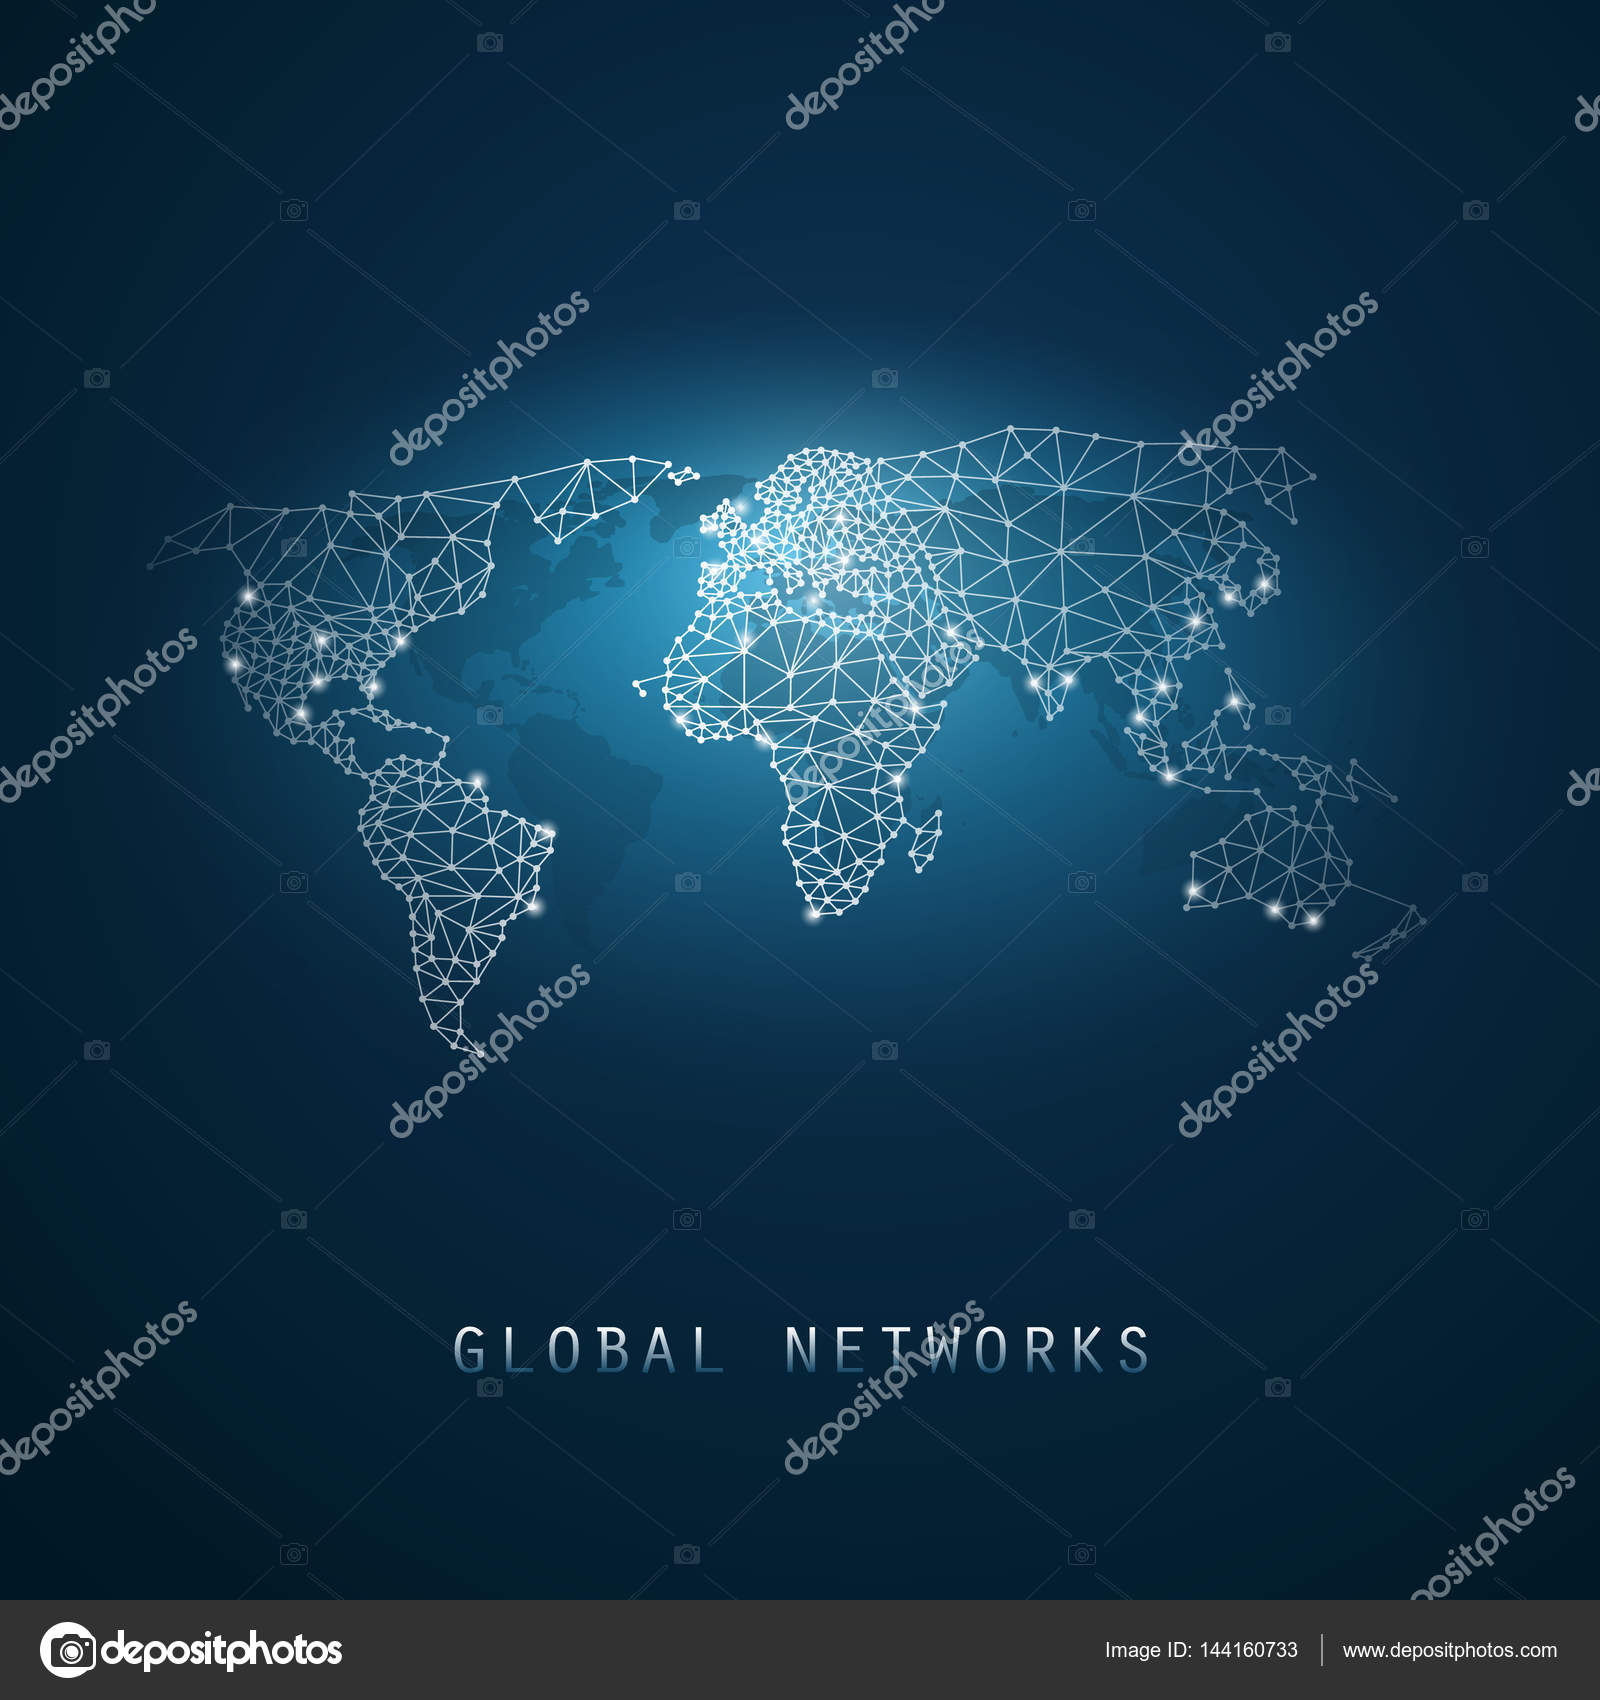 Cloud computing and networks with world map abstract global cooperation it or technology concept background or cover design element template illustration in editable vector format vector by bagotaj gumiabroncs Image collections